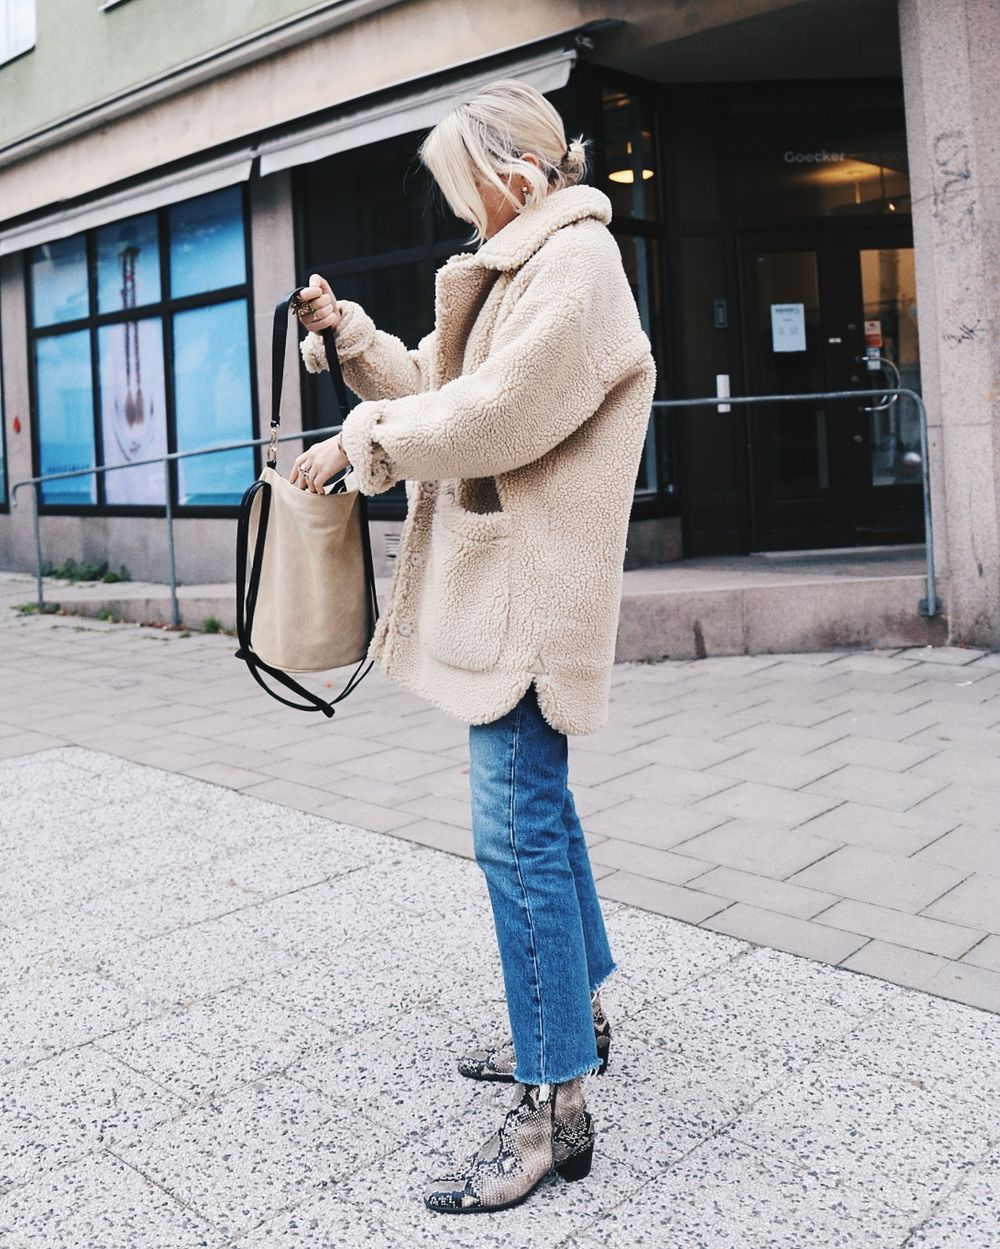 Get This Swedish Blogger's Cool Sherpa Jacket Outfit — Josefin Dahlberg in shearling jacket Jeans and Snake-Print Boots